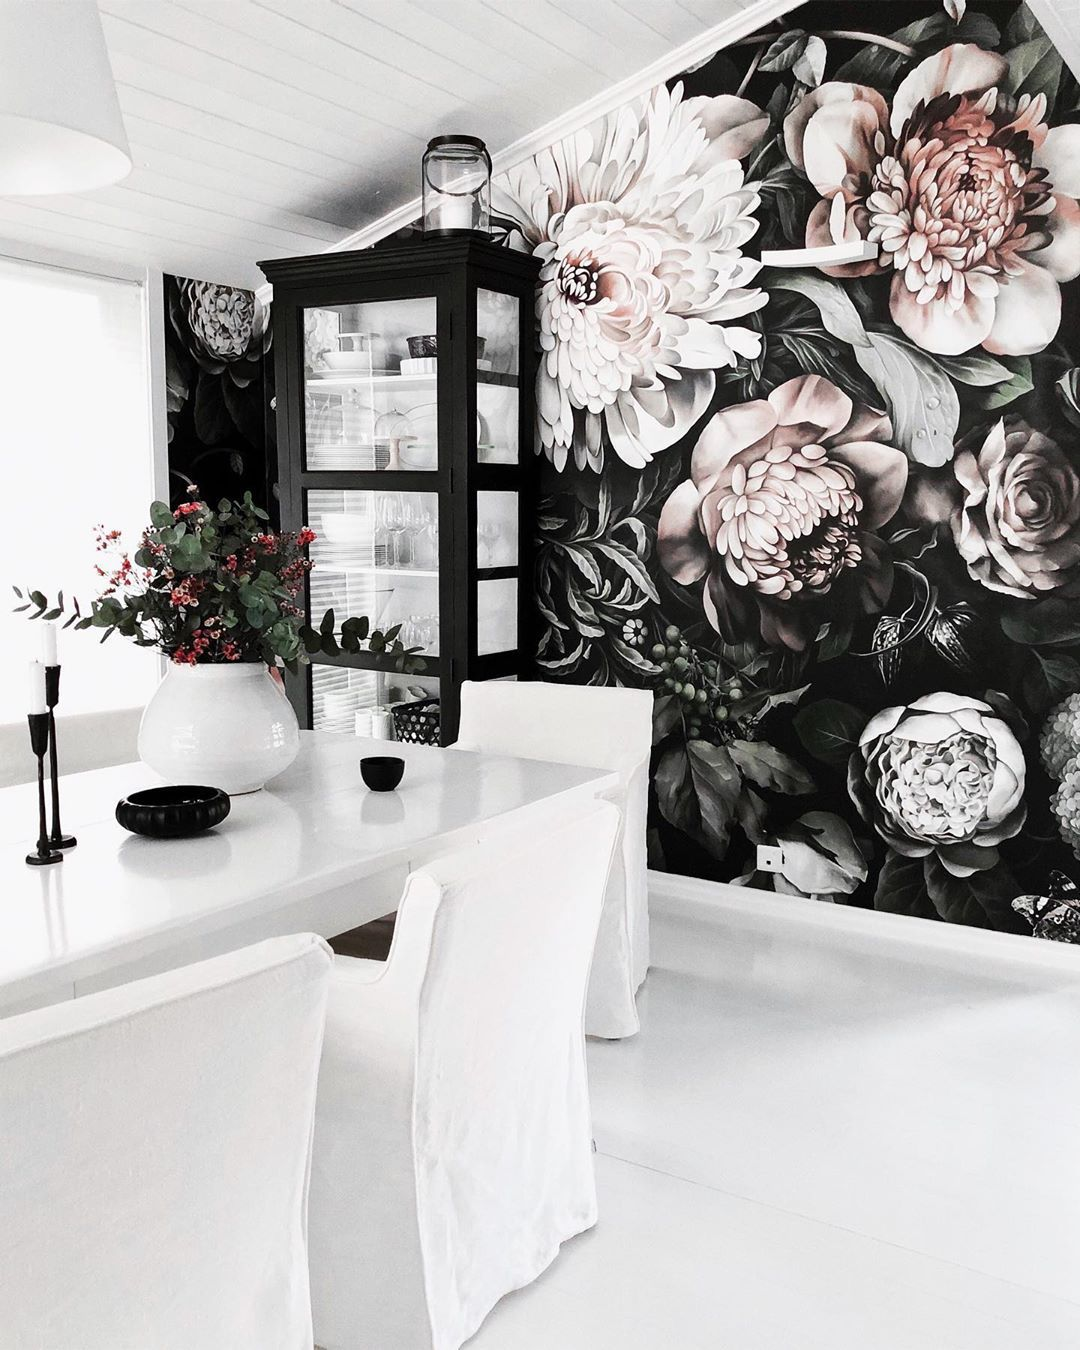 Sonja Ols Describes Ellie S Wallpaper As The Spring Feeling In Her Kitchen A Floral Wallpaper Bedroom Home Wallpaper Large Floral Wallpaper